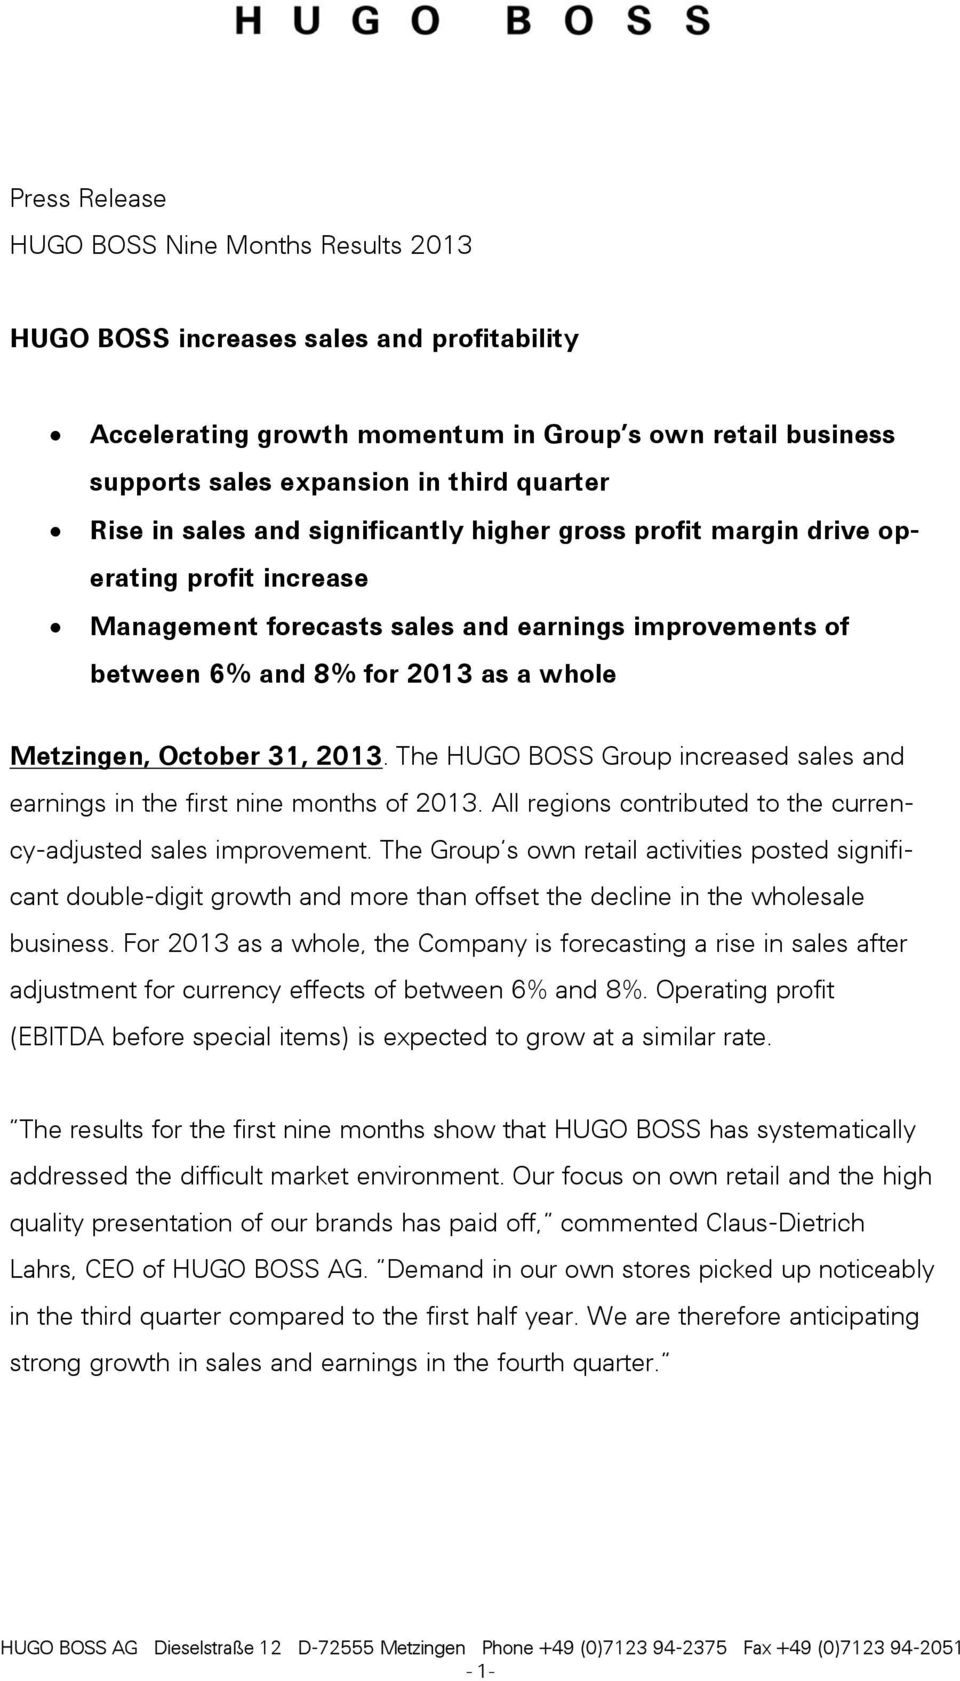 3, 203. The HUGO BOSS Group increased sales and earnings in the first nine months of 203. All regions contributed to the currency-adjusted sales improvement.